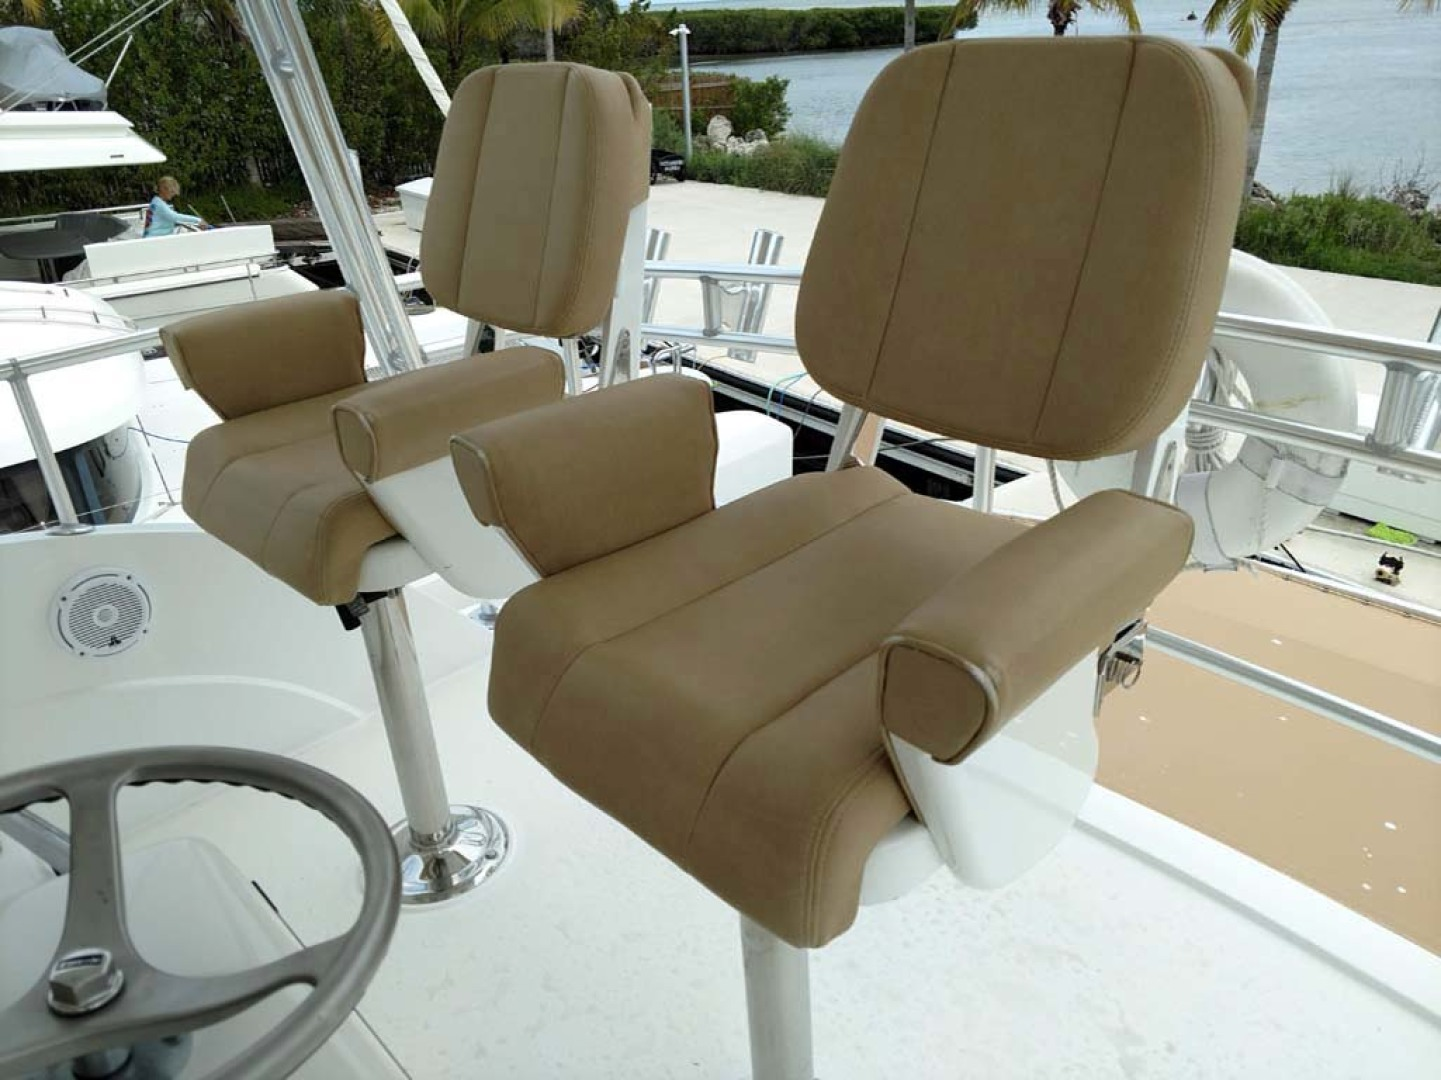 Bertram-510 Convertible 2002-Mary B Oceans Edge Hotel and Marina, Key West-Florida-United States-Helm Chairs-1127131 | Thumbnail